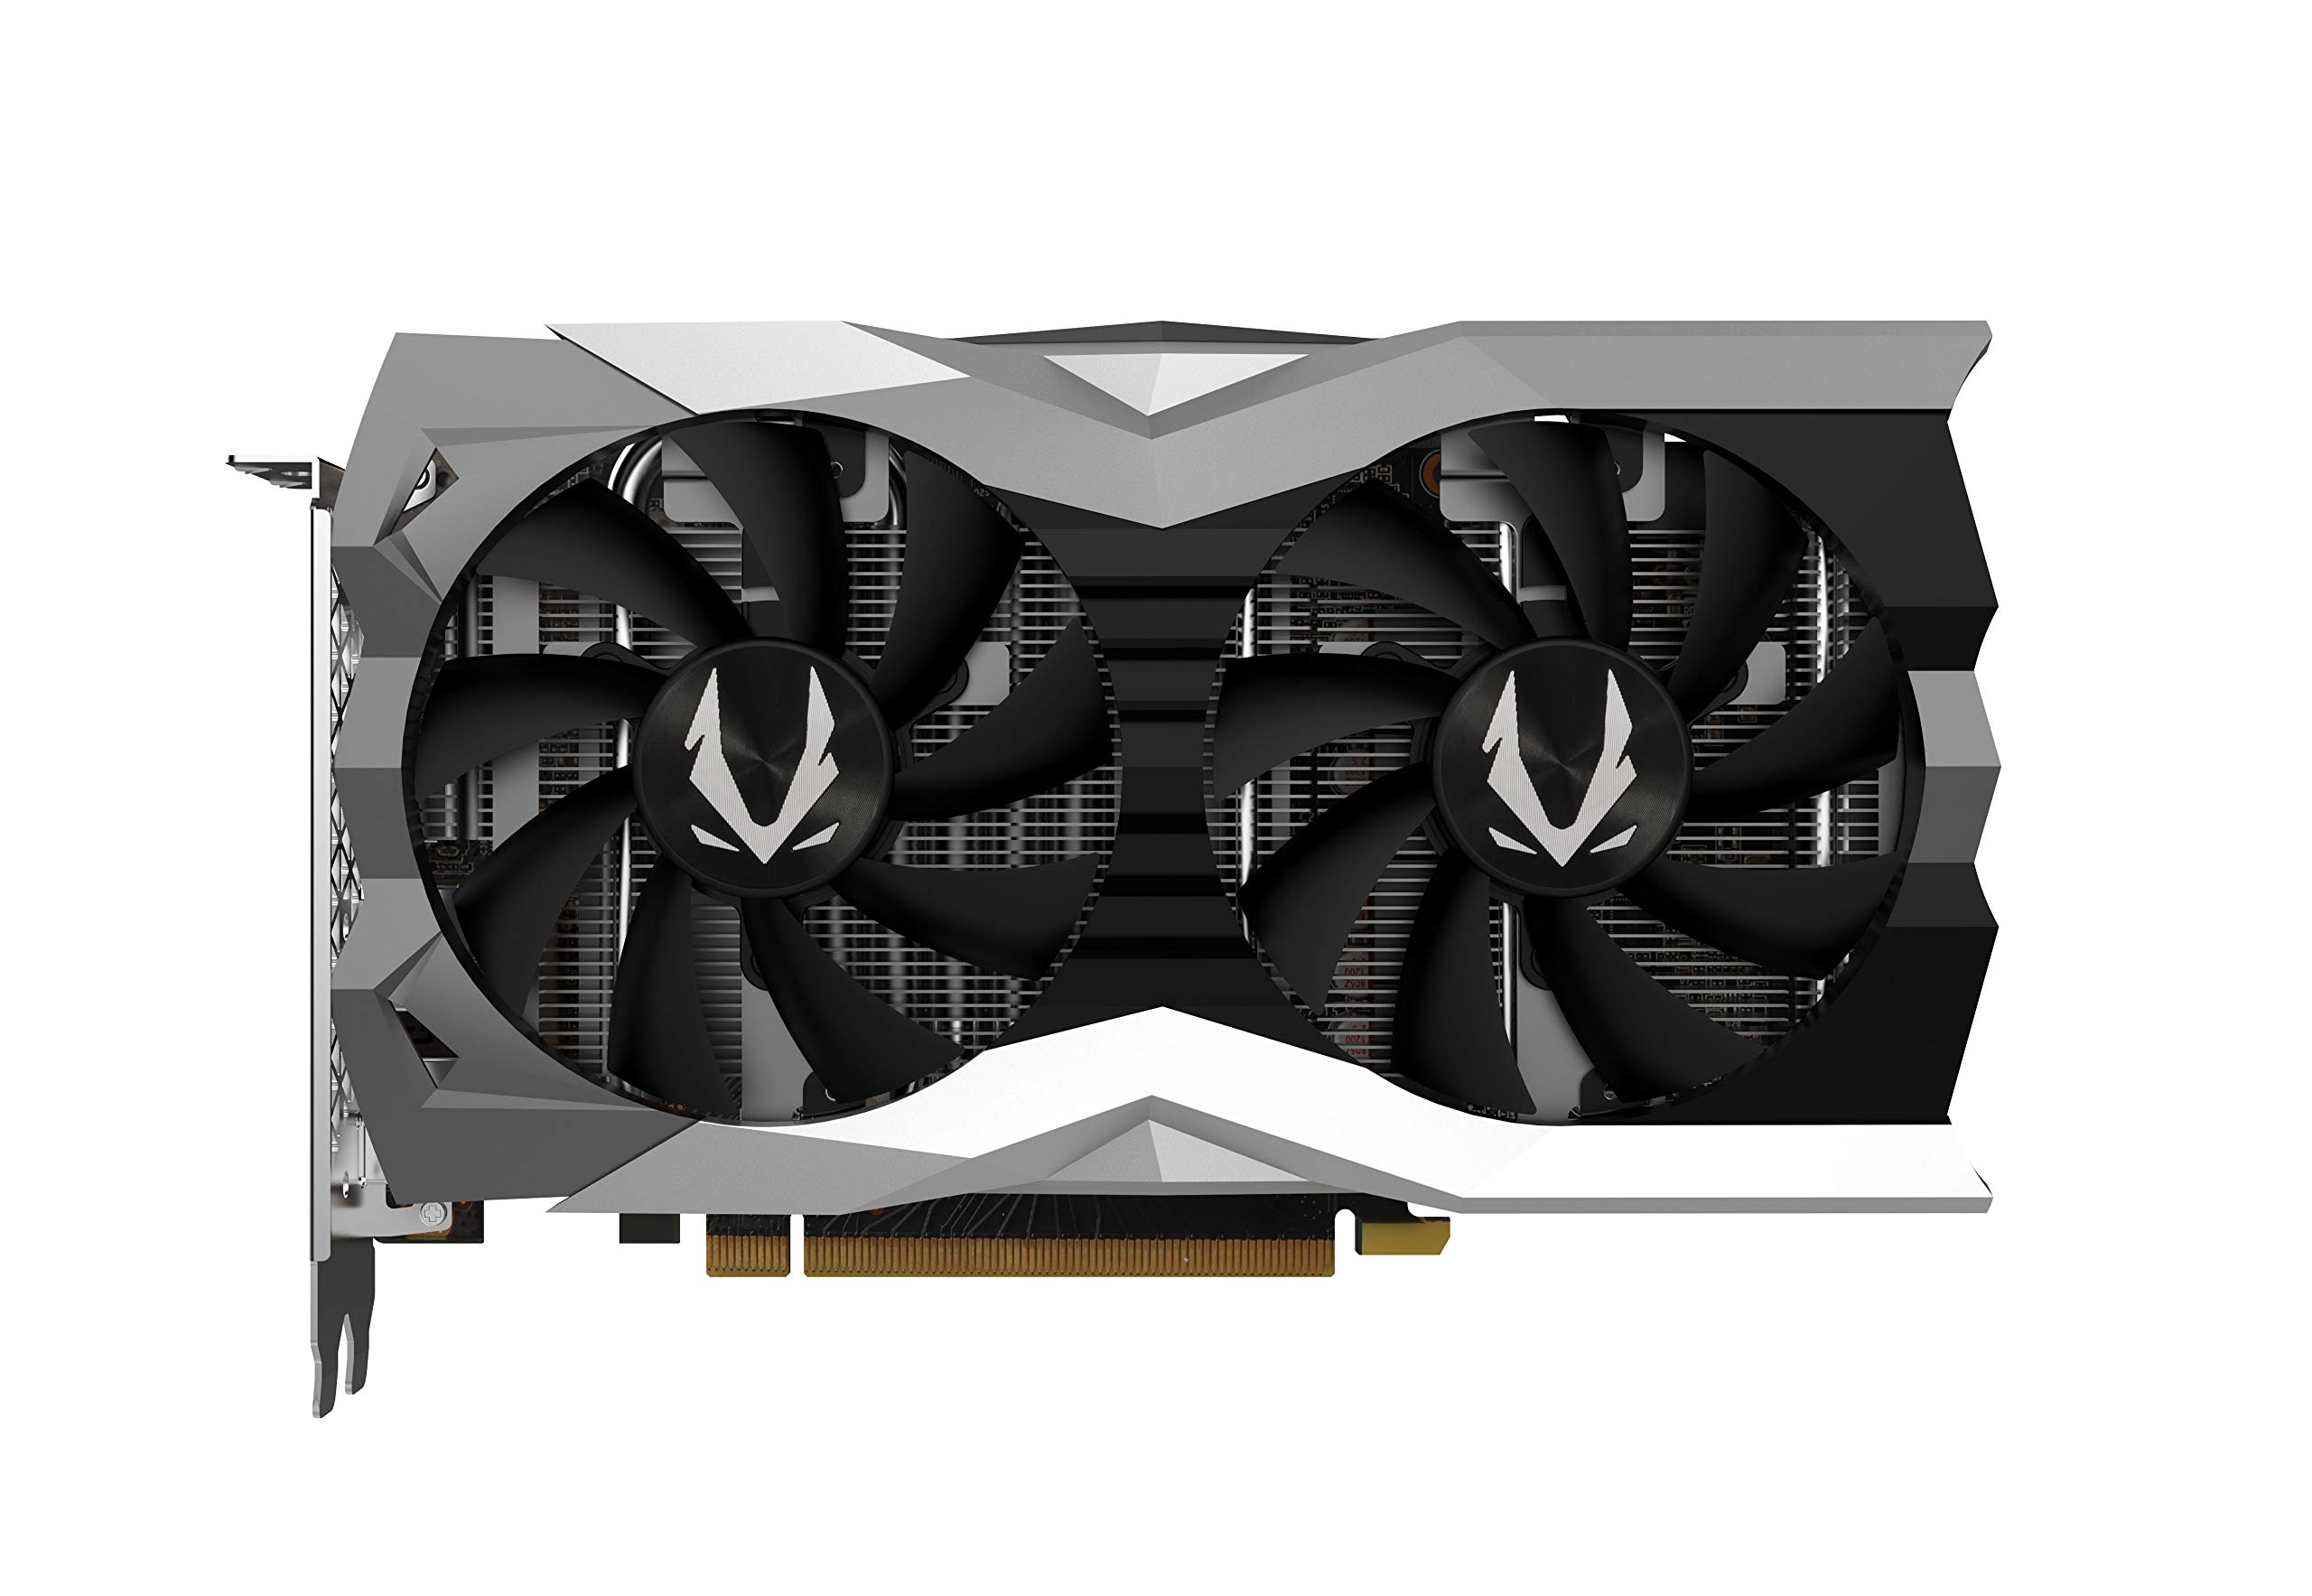 ZOTAC Gaming GeForce RTX 2060 Twin Fan 6GB GDDR6 192-bit Gaming Graphics Card, Super Compact, IceStorm 2.0, ZT-T20600F-10M by ZOTAC (Image #6)